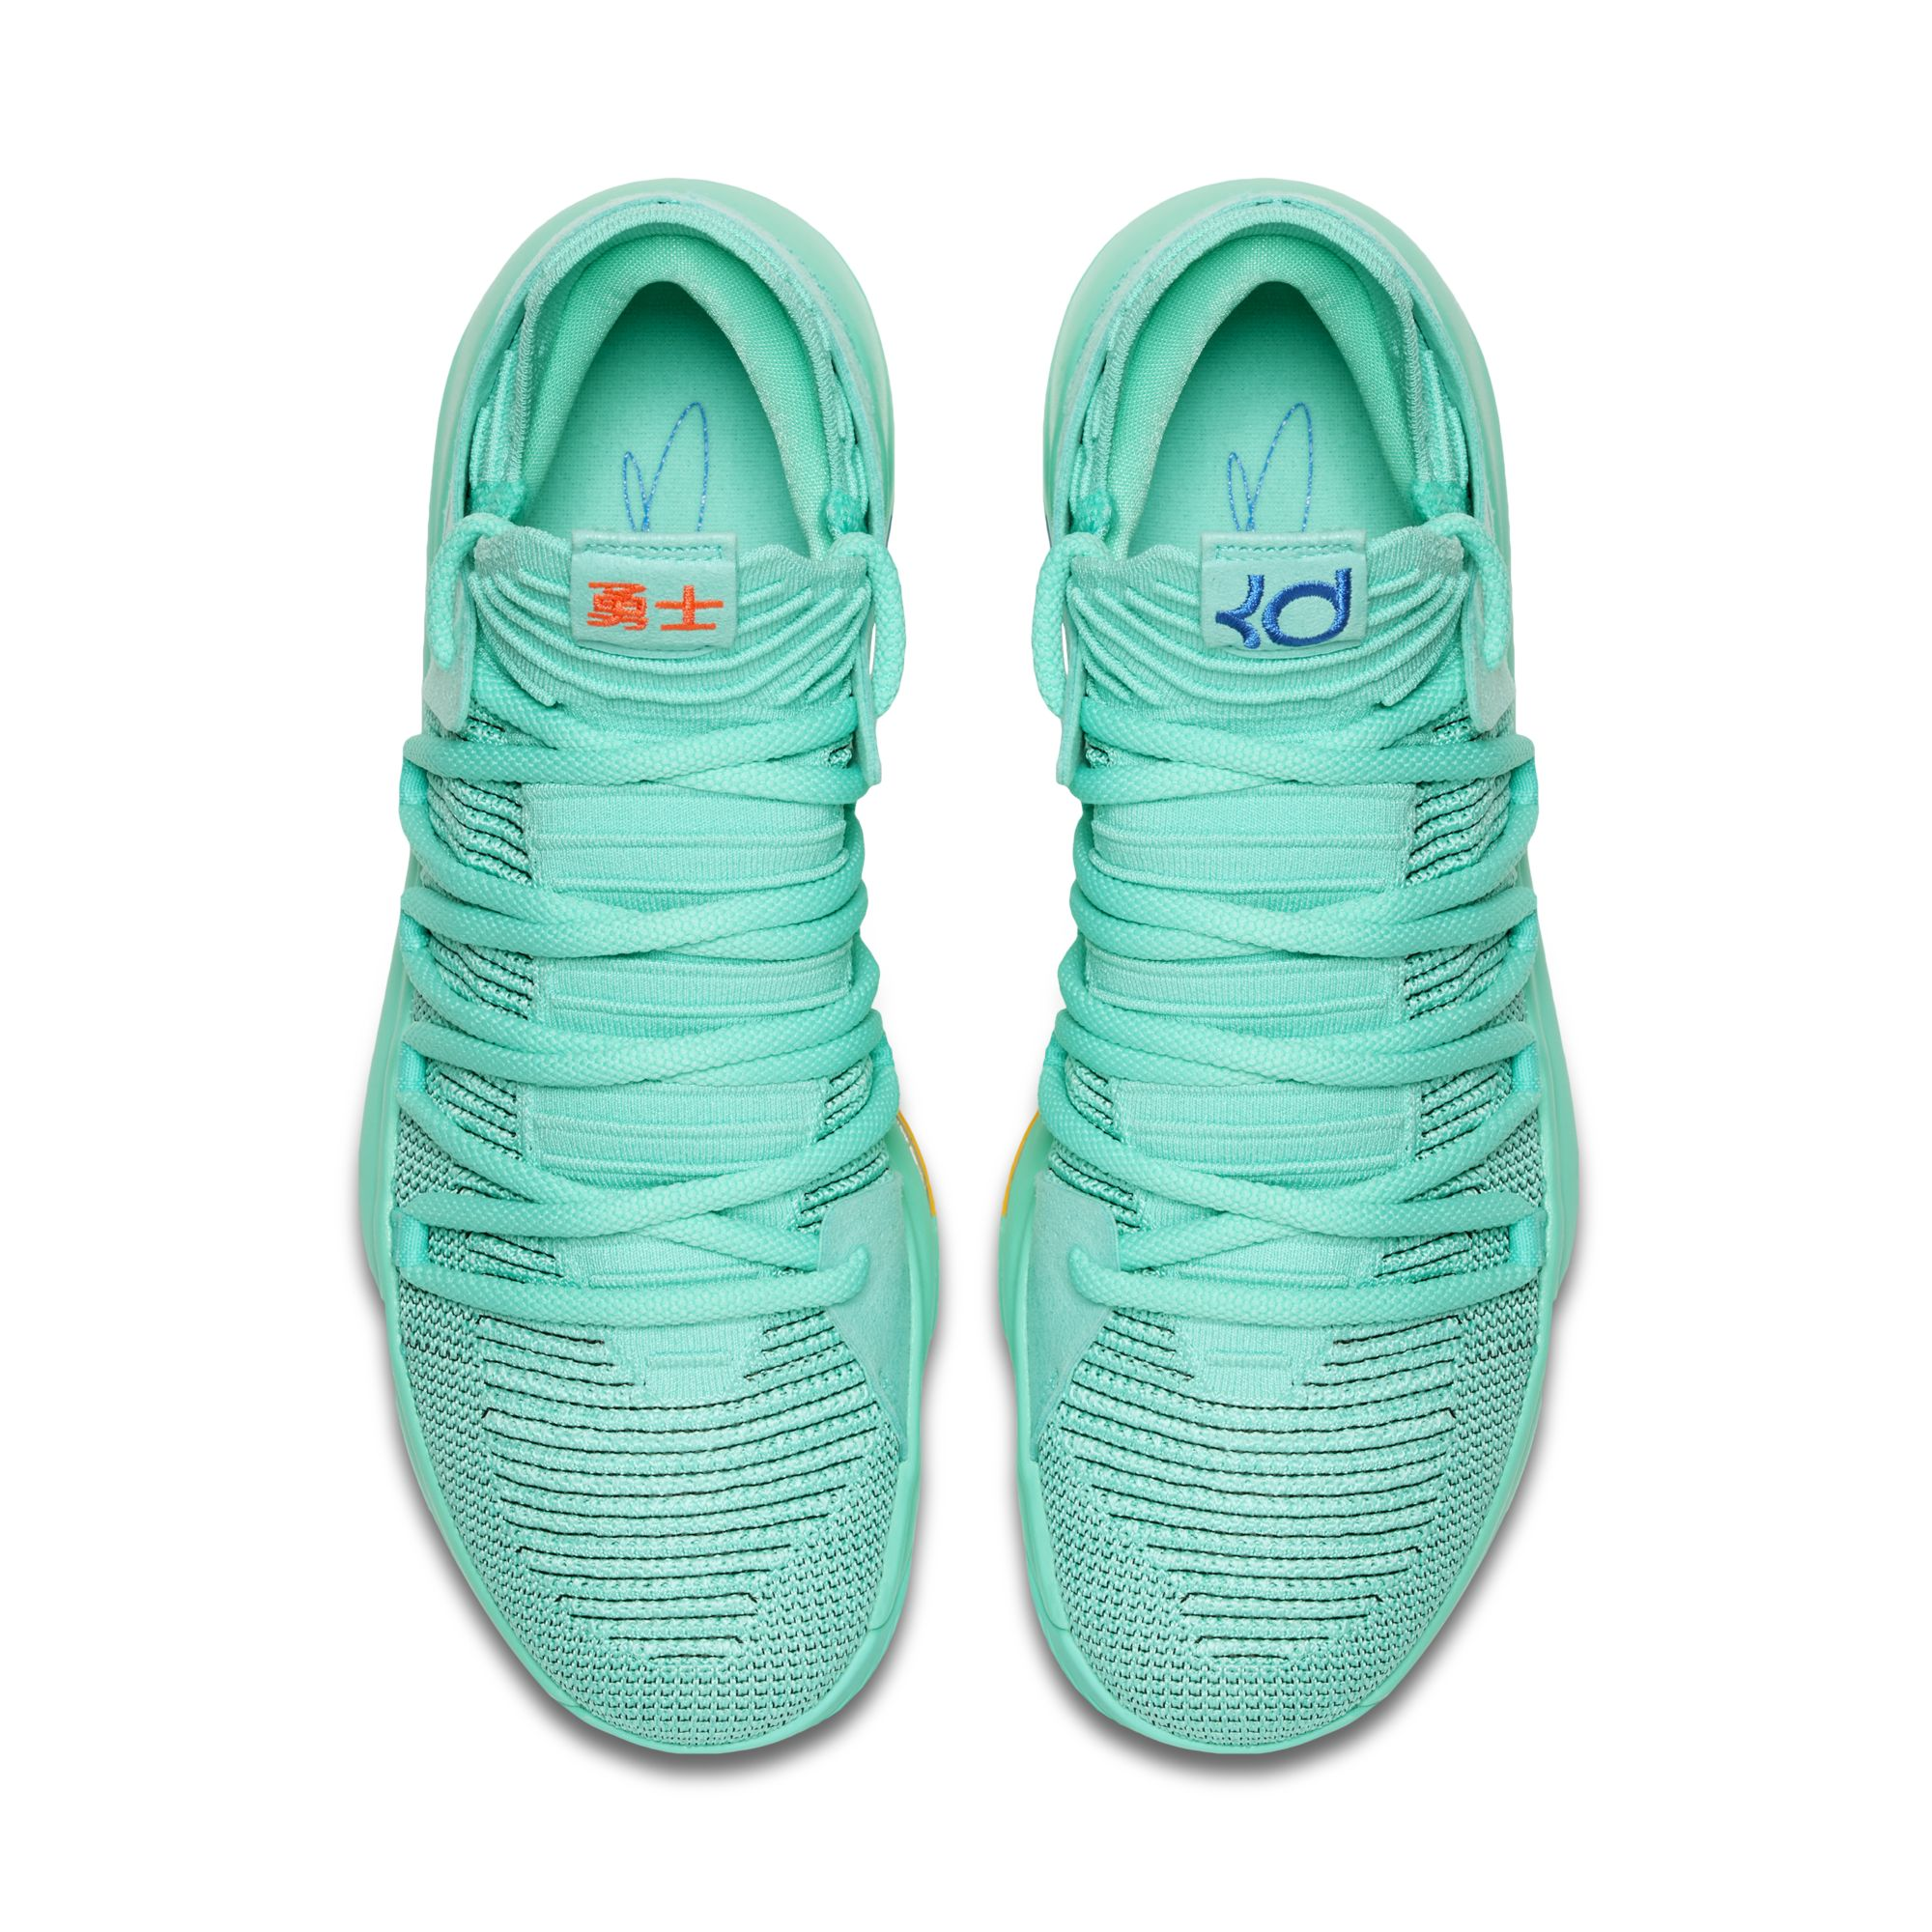 Nike KD 10 City Edition 2 3 - WearTesters 3a421ea37